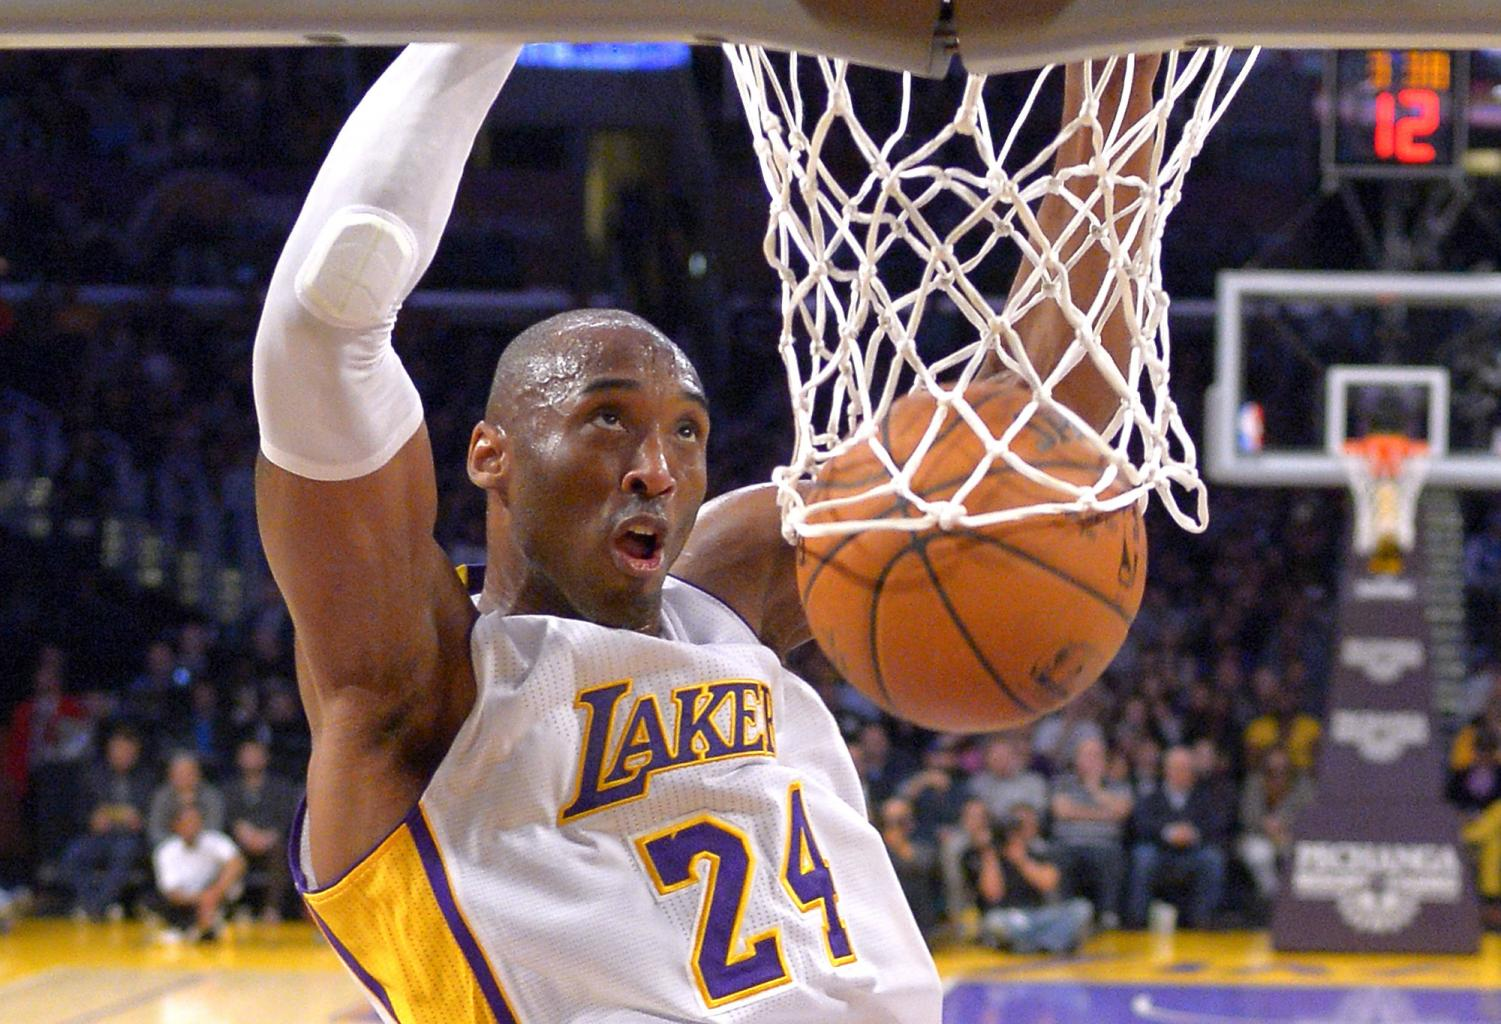 In this Jan. 4, 2015 file photo Los Angeles Lakers guard Kobe Bryant dunks during the first half of an NBA basketball game against the Indiana Pacers in Los Angeles. Bryant, a five-time NBA champion and a two-time Olympic gold medalist, died in a helicopter crash in California on Sunday, Jan. 26, 2020. He was 41.